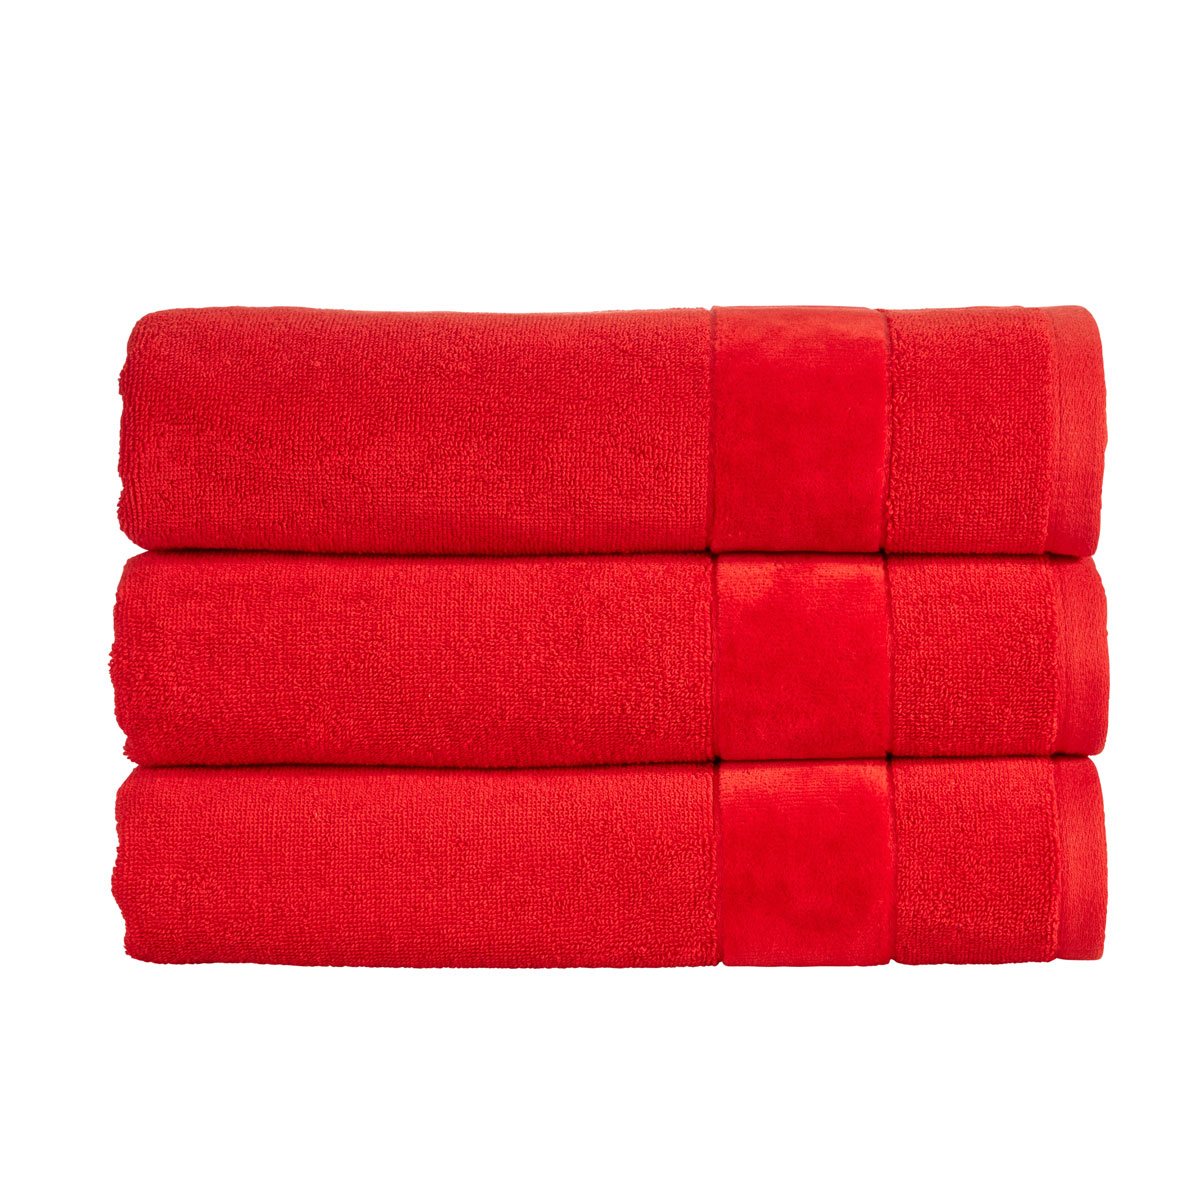 An image of Luxury Turkish Cotton Prism Face Cloth in Fire Engine (Red) by Christy